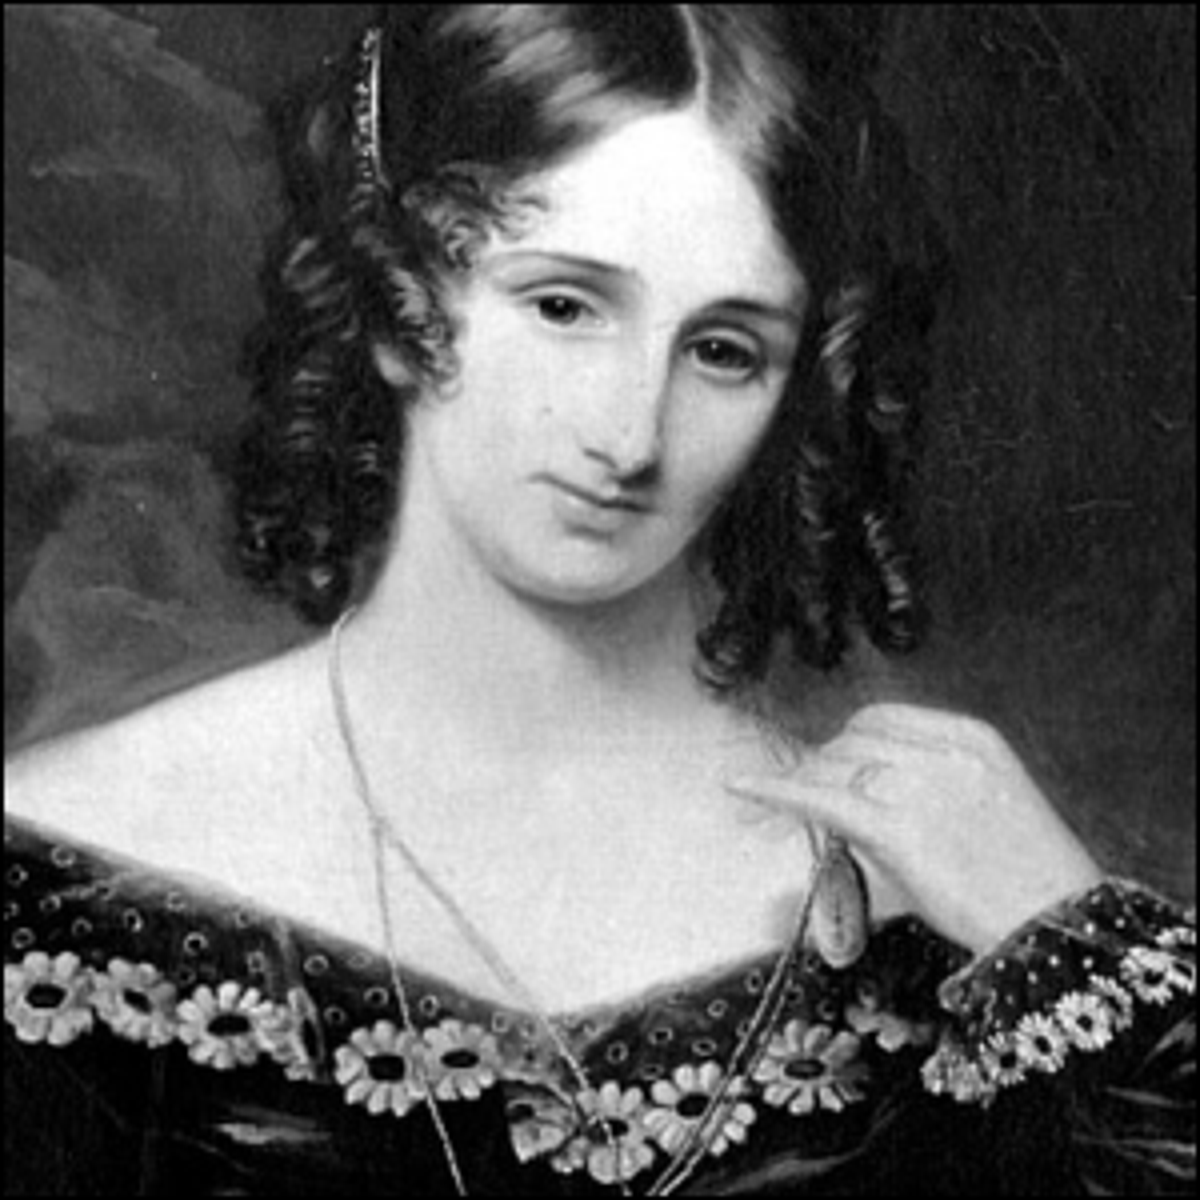 A portrait of Mary Shelley, author of the Gothic novel Frankenstein.